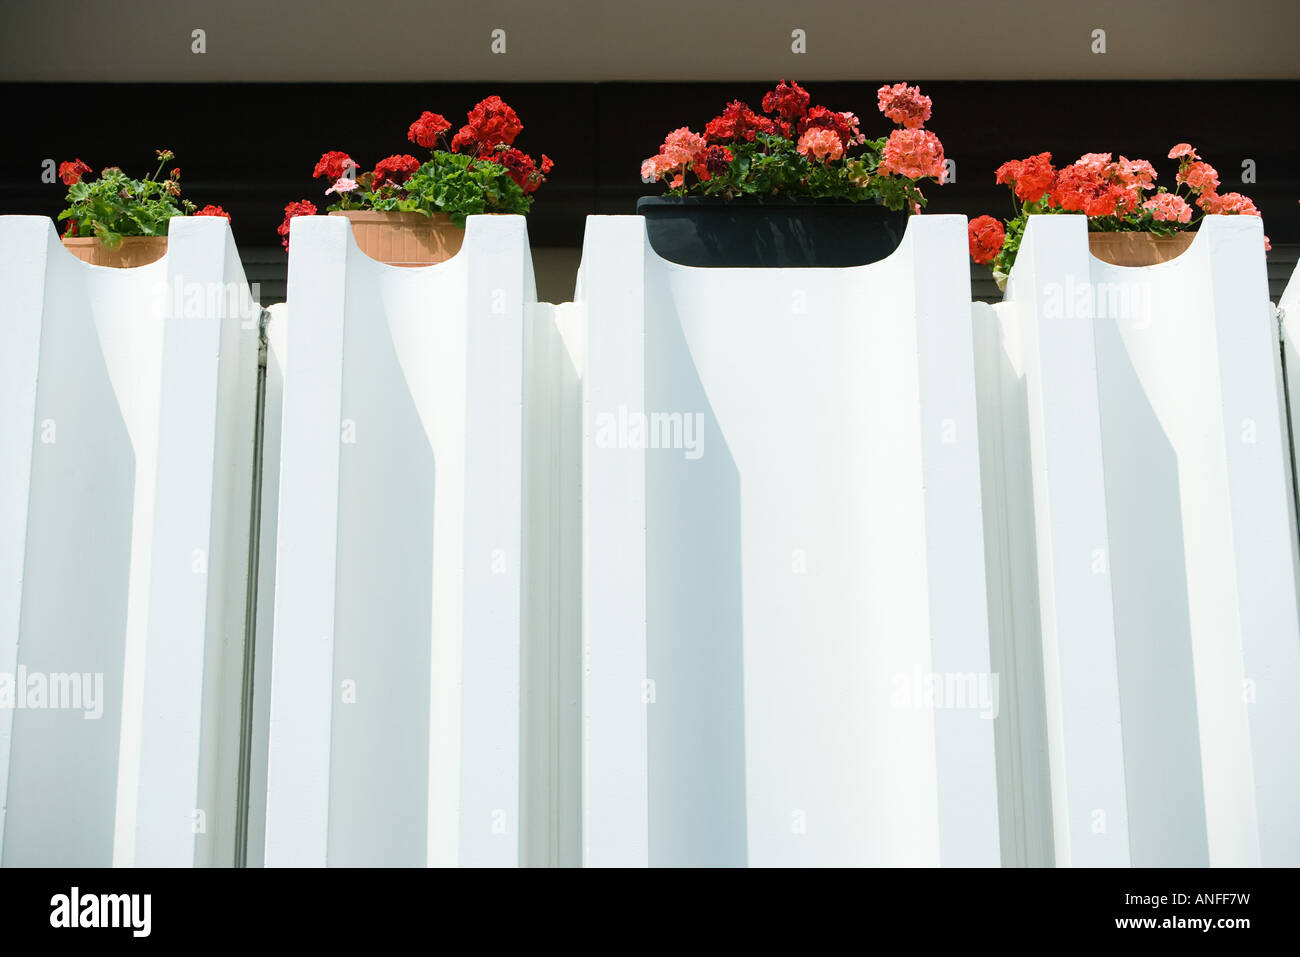 Geraniums in window boxes Stock Photo